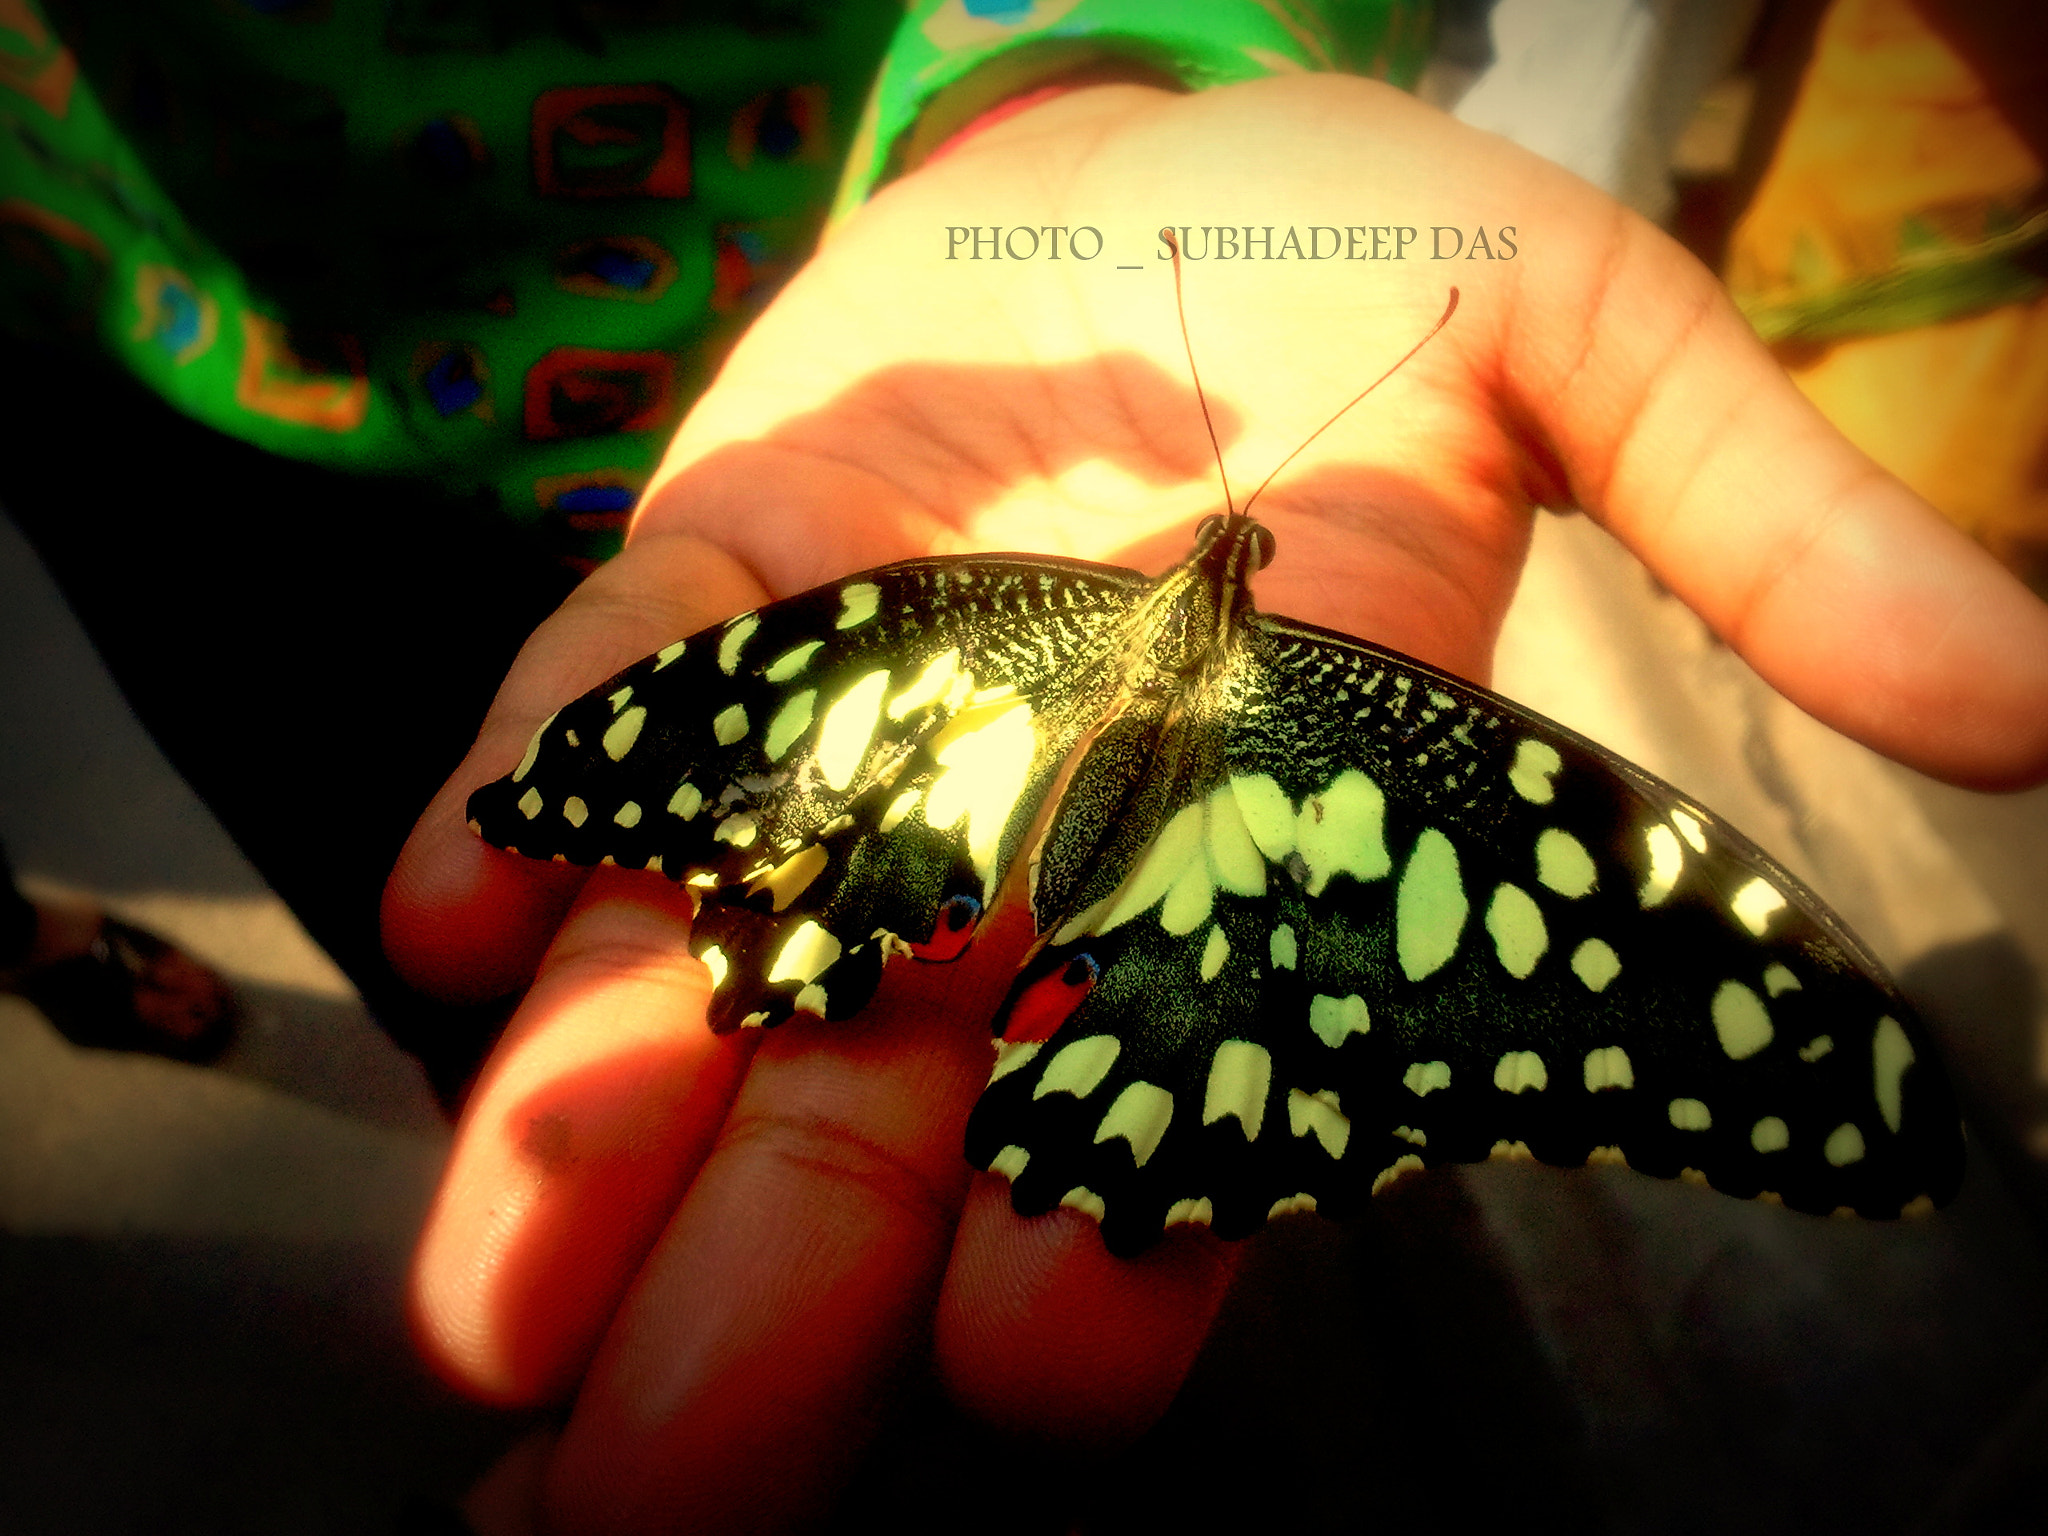 Photograph BUTTERFLY ON HAND :) :)  MOBILE CAPTURE  by SUBHA   on 500px